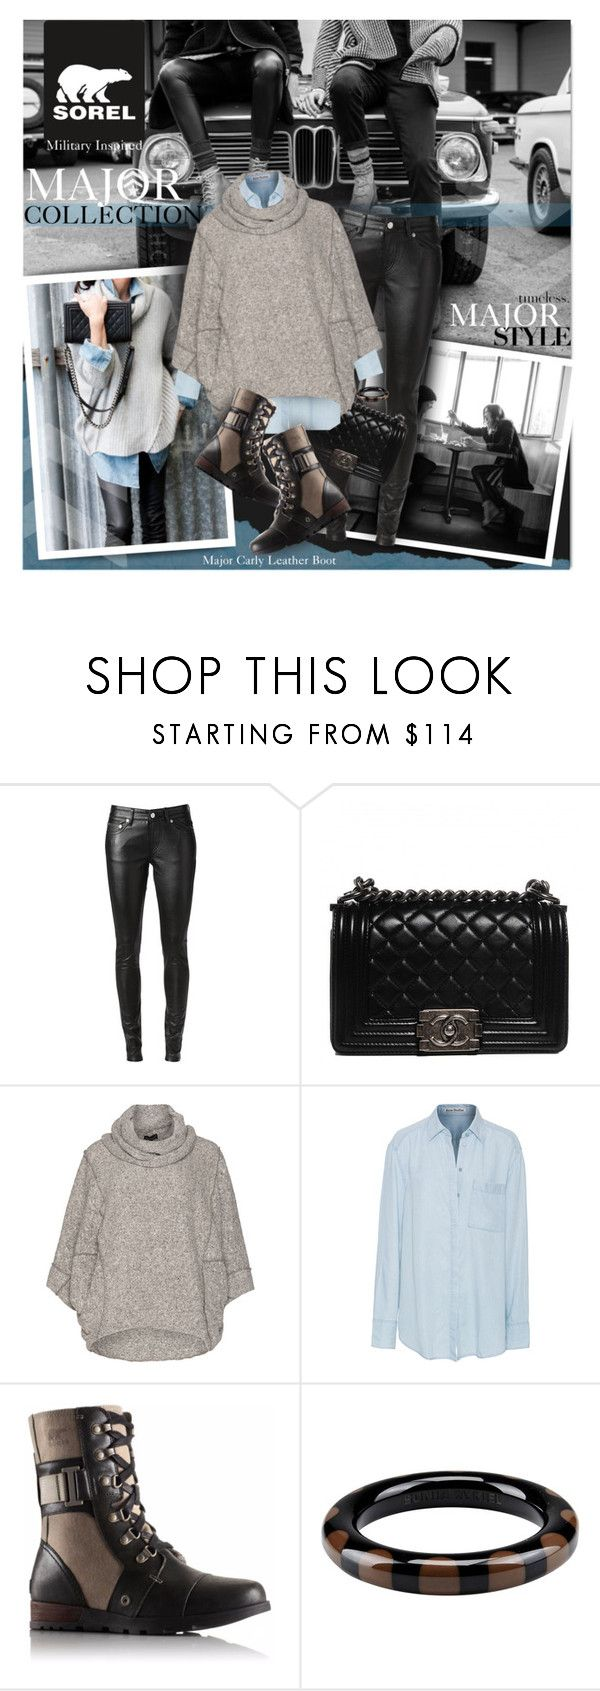 """""""The Major Collection from SOREL"""" by mew-muse ❤ liked on Polyvore featuring SOREL, Trilogy, Yves Saint Laurent, Chanel, J Brand, Bohème, Acne Studios, Armani Privé, Sonia Rykiel and sorelstyle"""